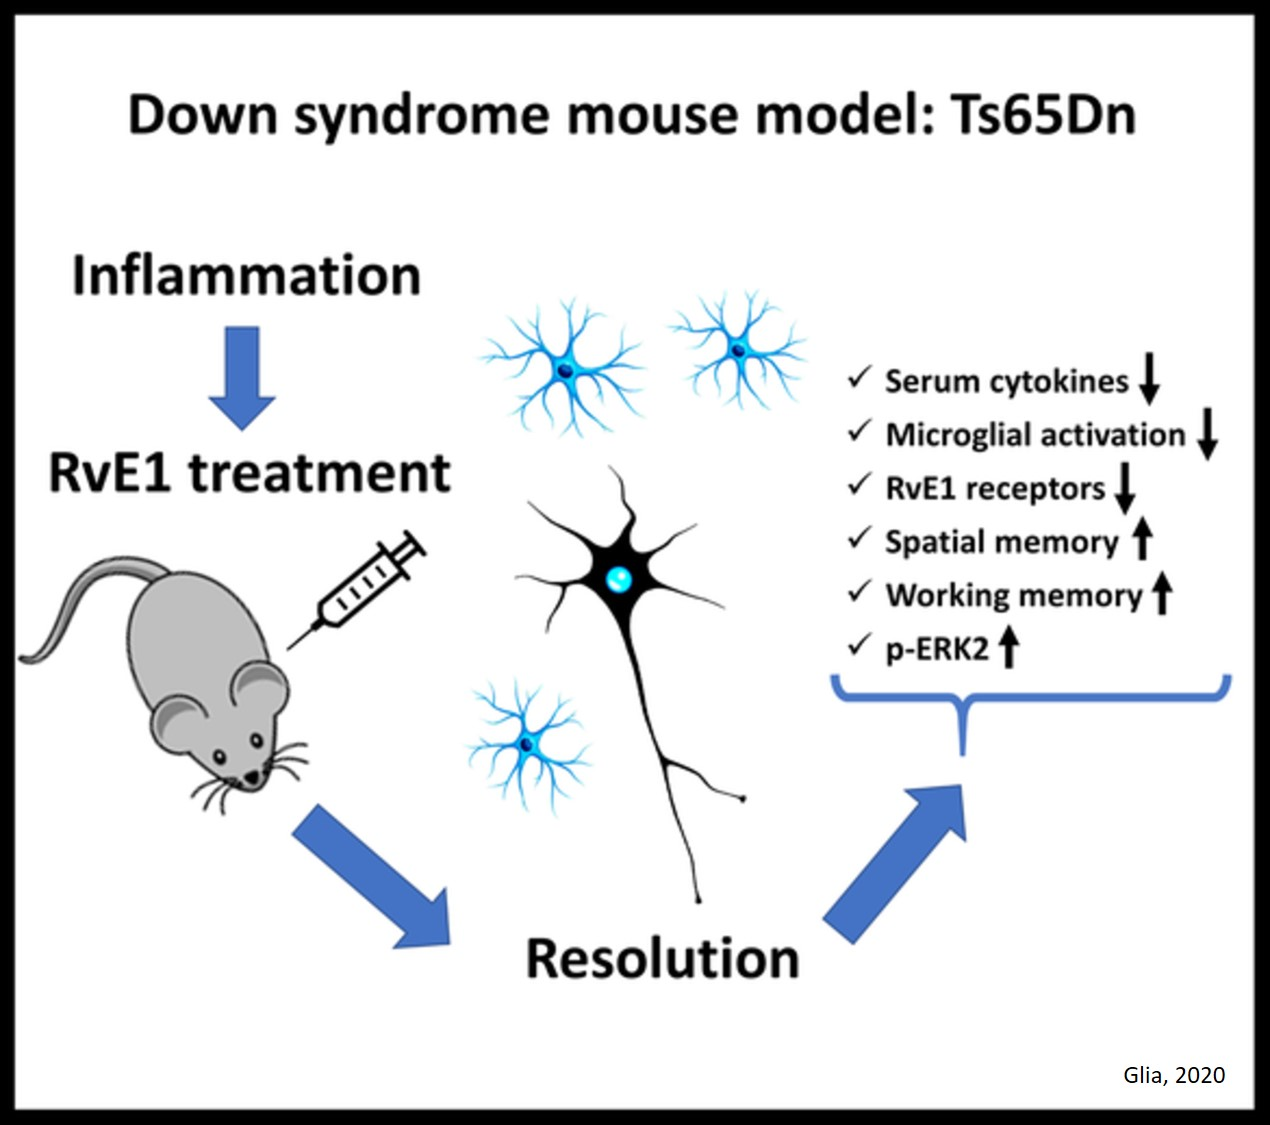 Resolving inflammation prevents memory loss in Down syndrome and Alzheimer's